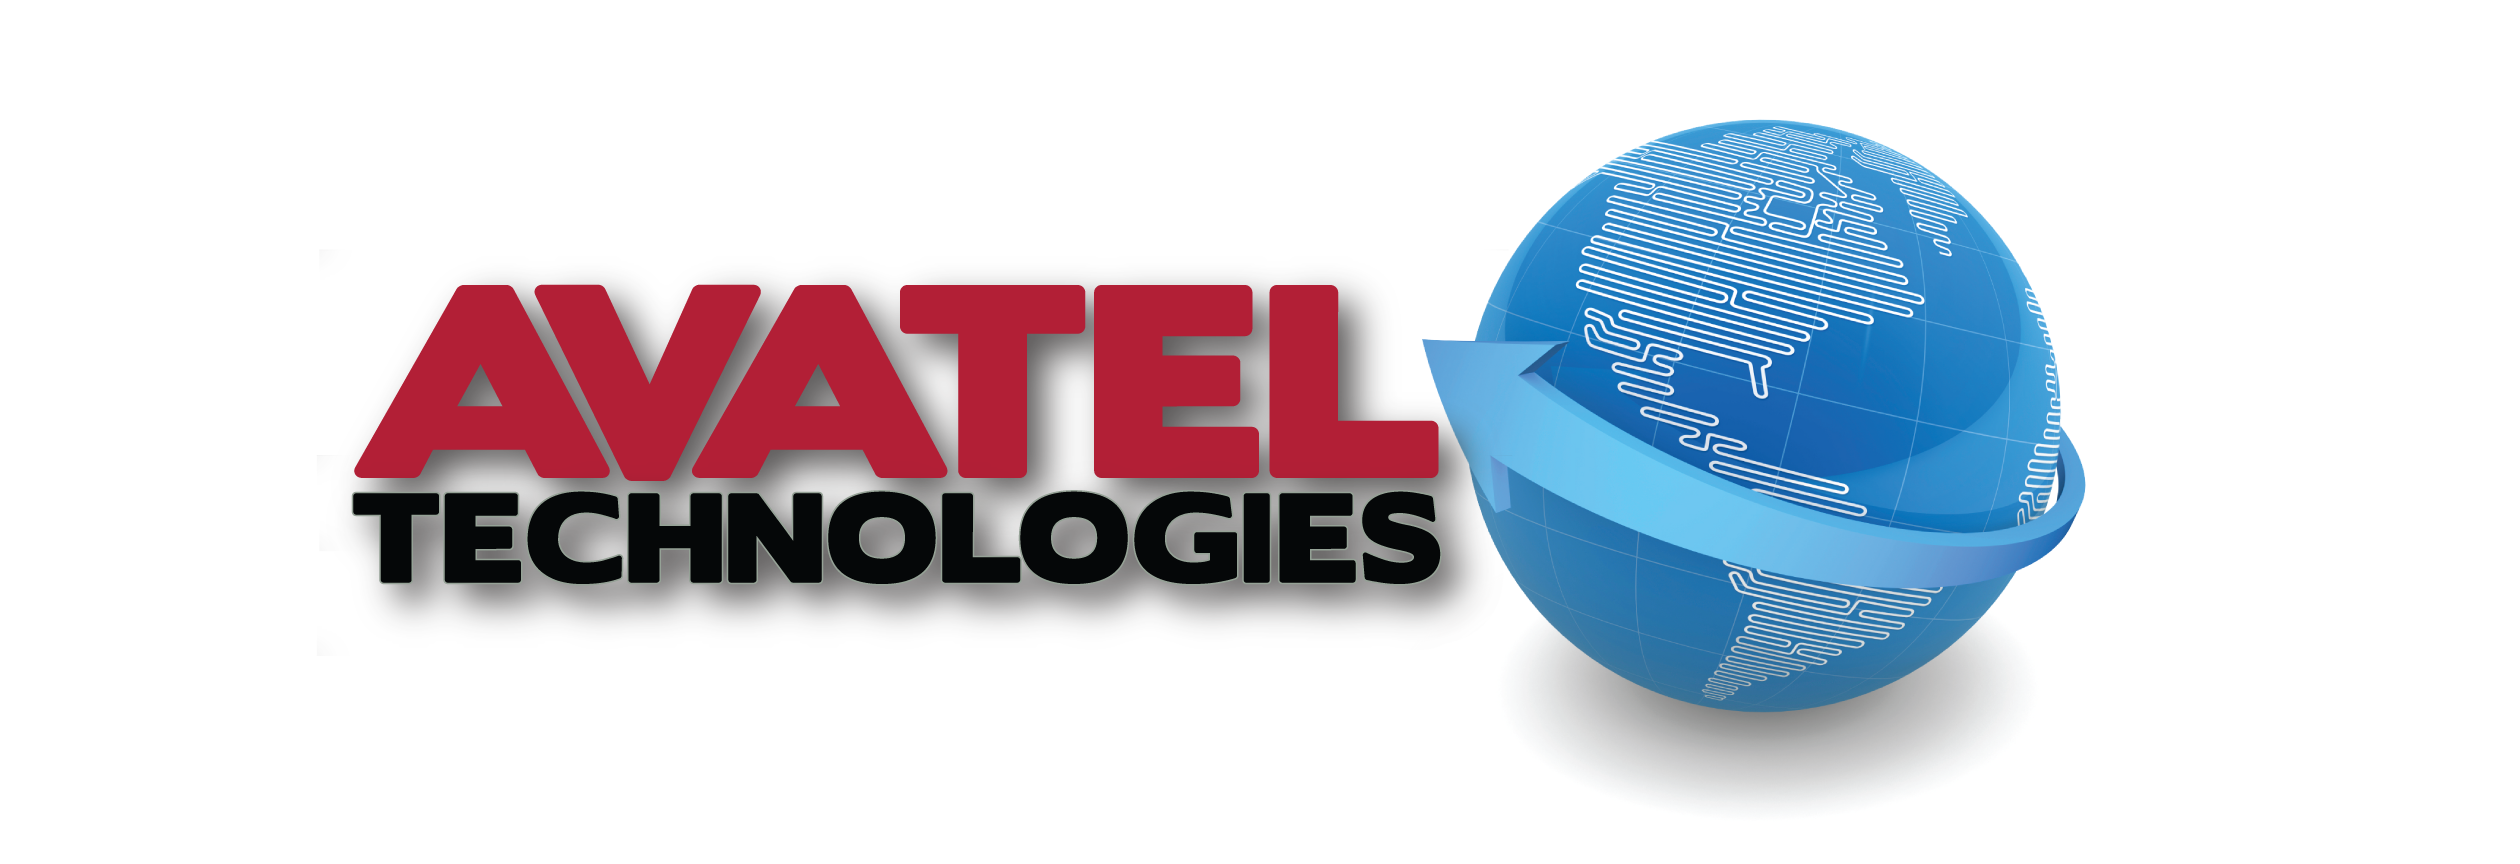 Avatel Business Phones